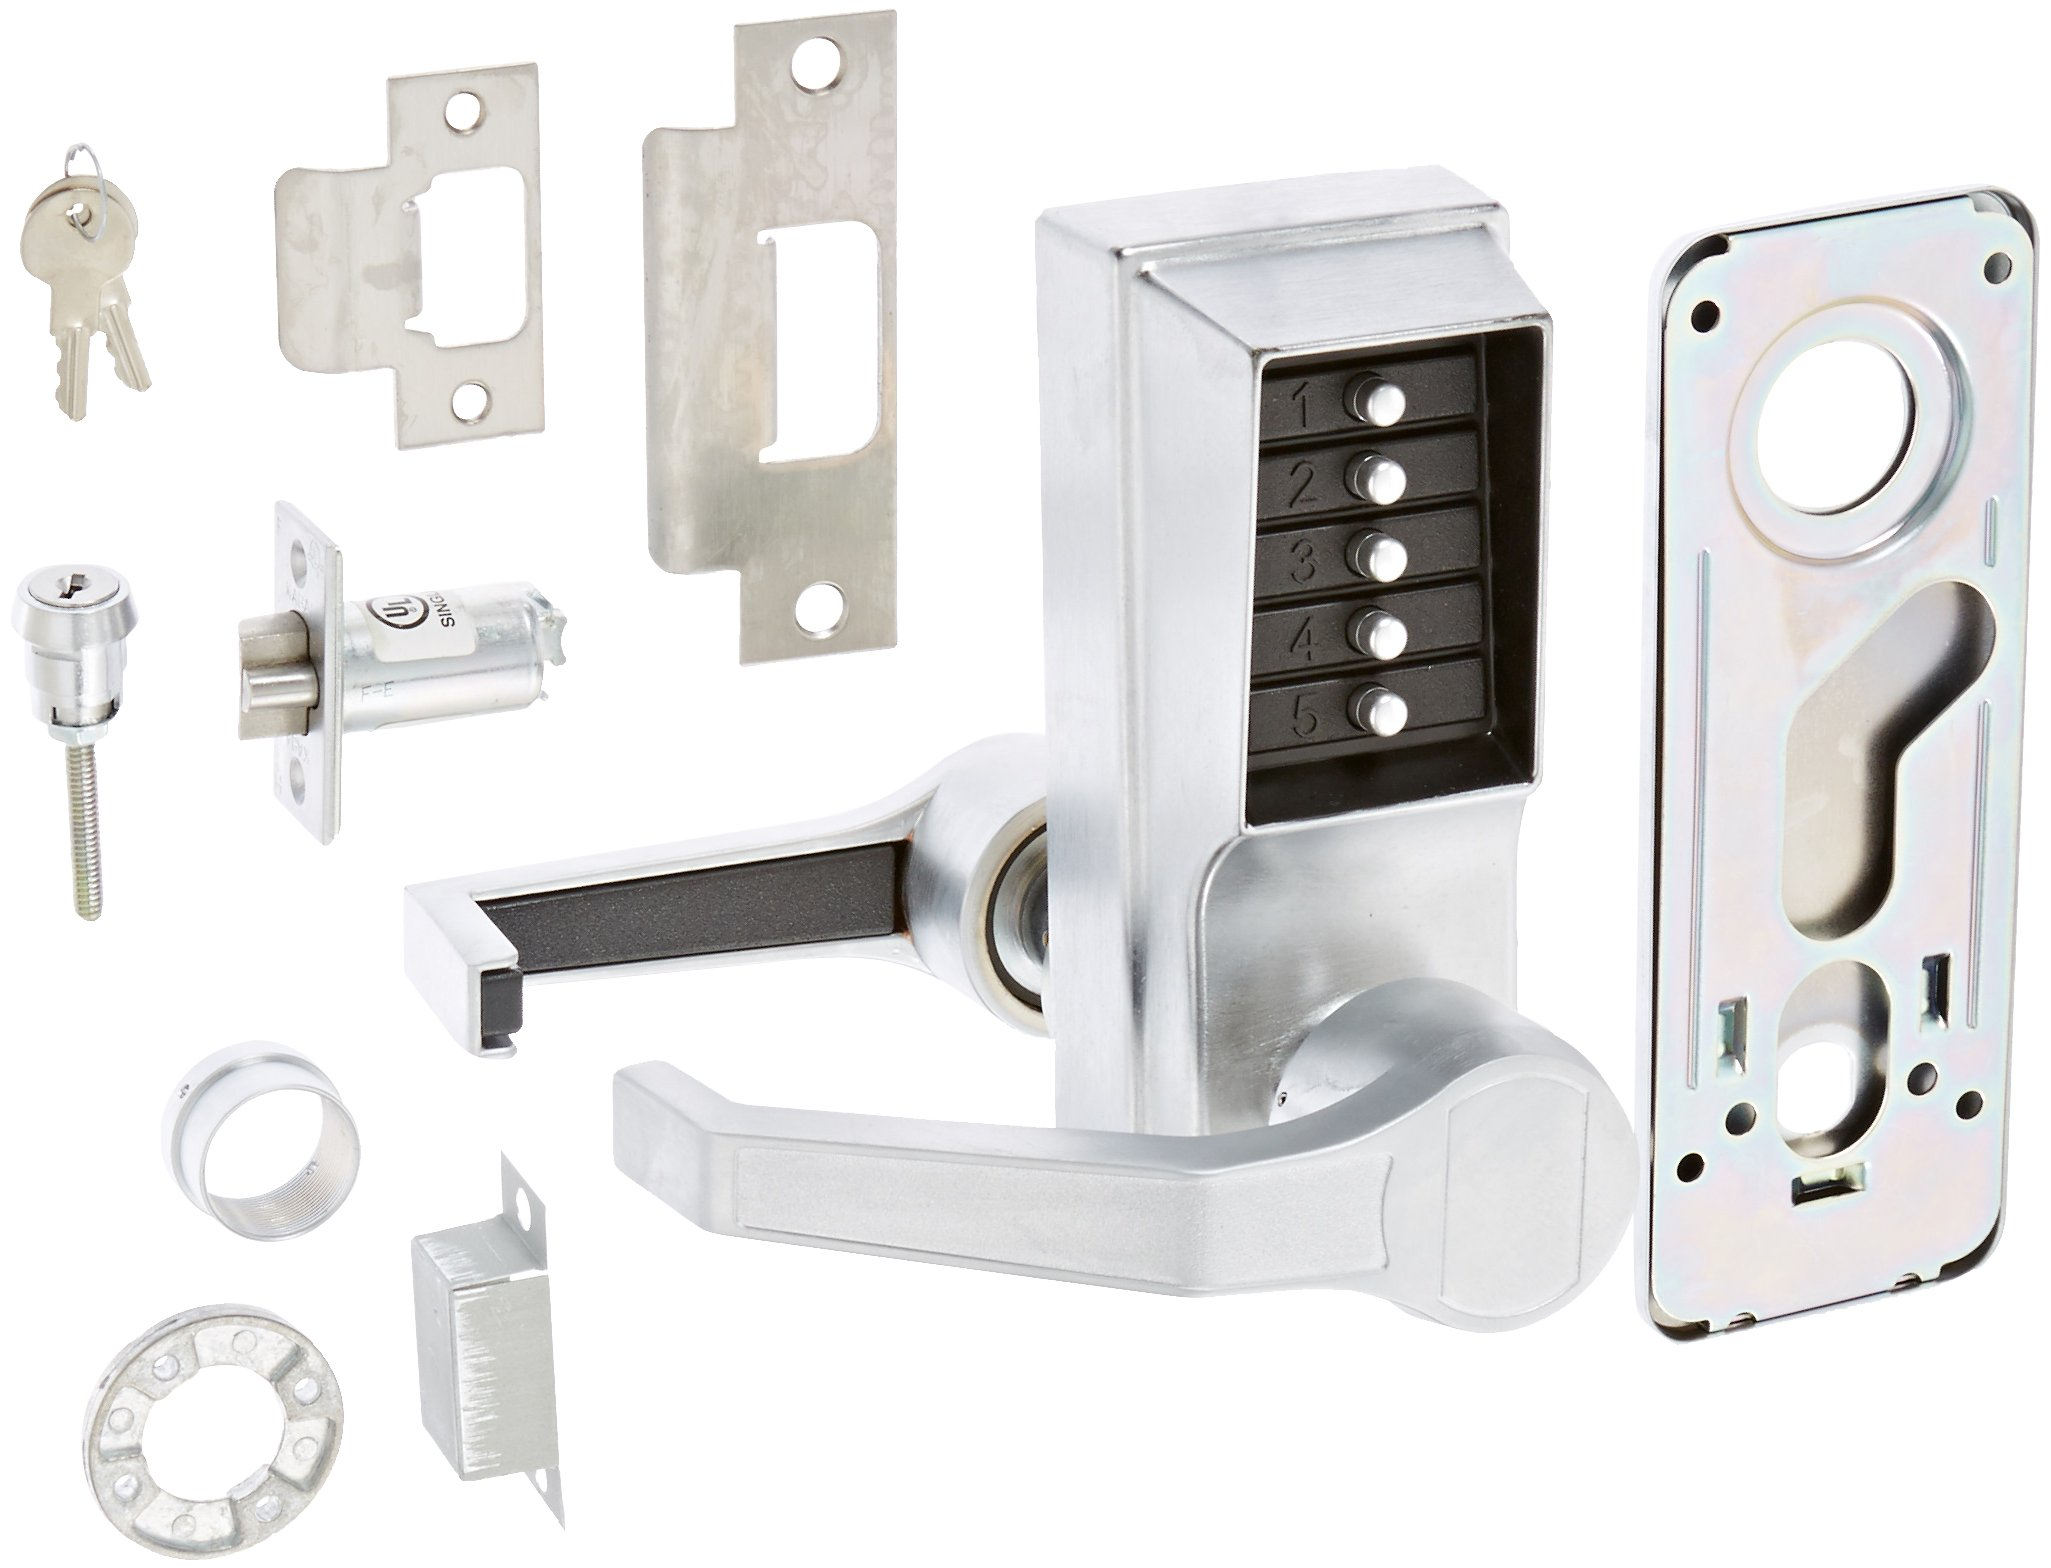 Kaba Simplex L1000 Series Metal Mechanical Pushbutton Cylindrical Lock with Lever, No Key Override, 13mm Throw Latch, Floating Face Plate, 70mm Backset, Satin Chrome Finish, Left Hand